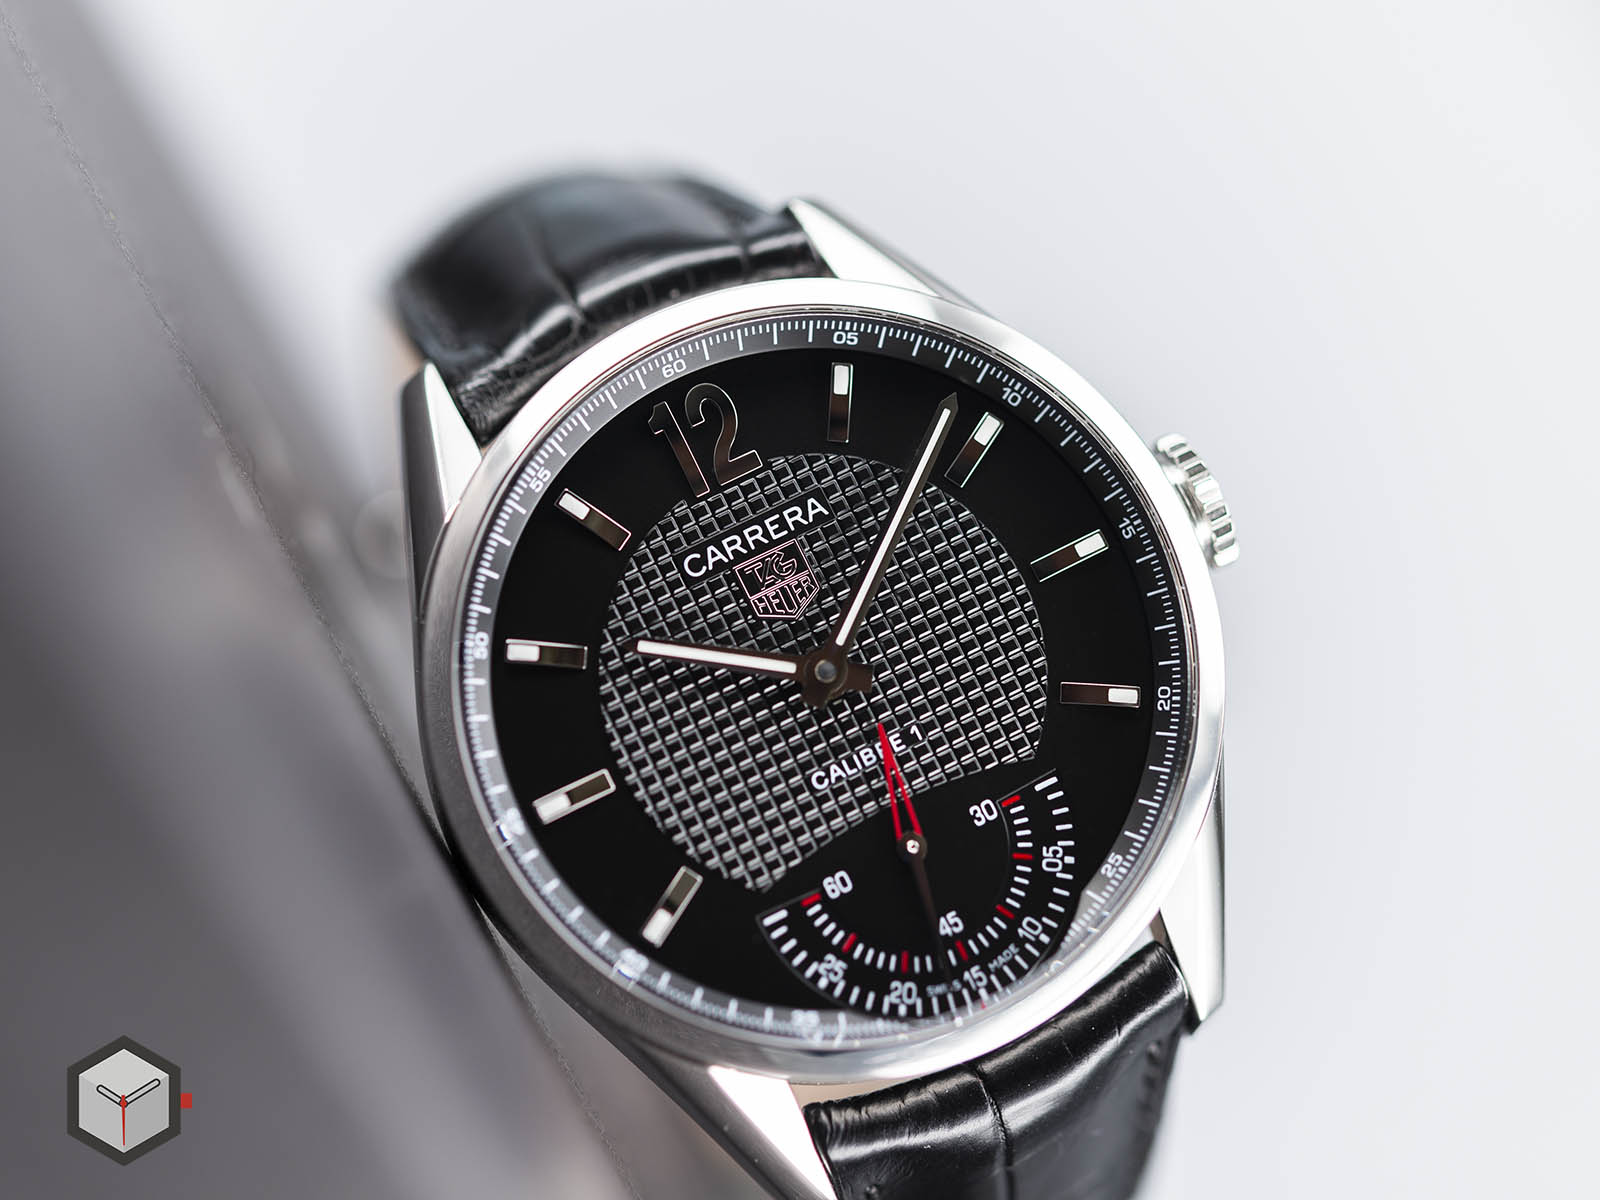 tag-heuer-carrera-calibre-1-limited-edition-4.jpg